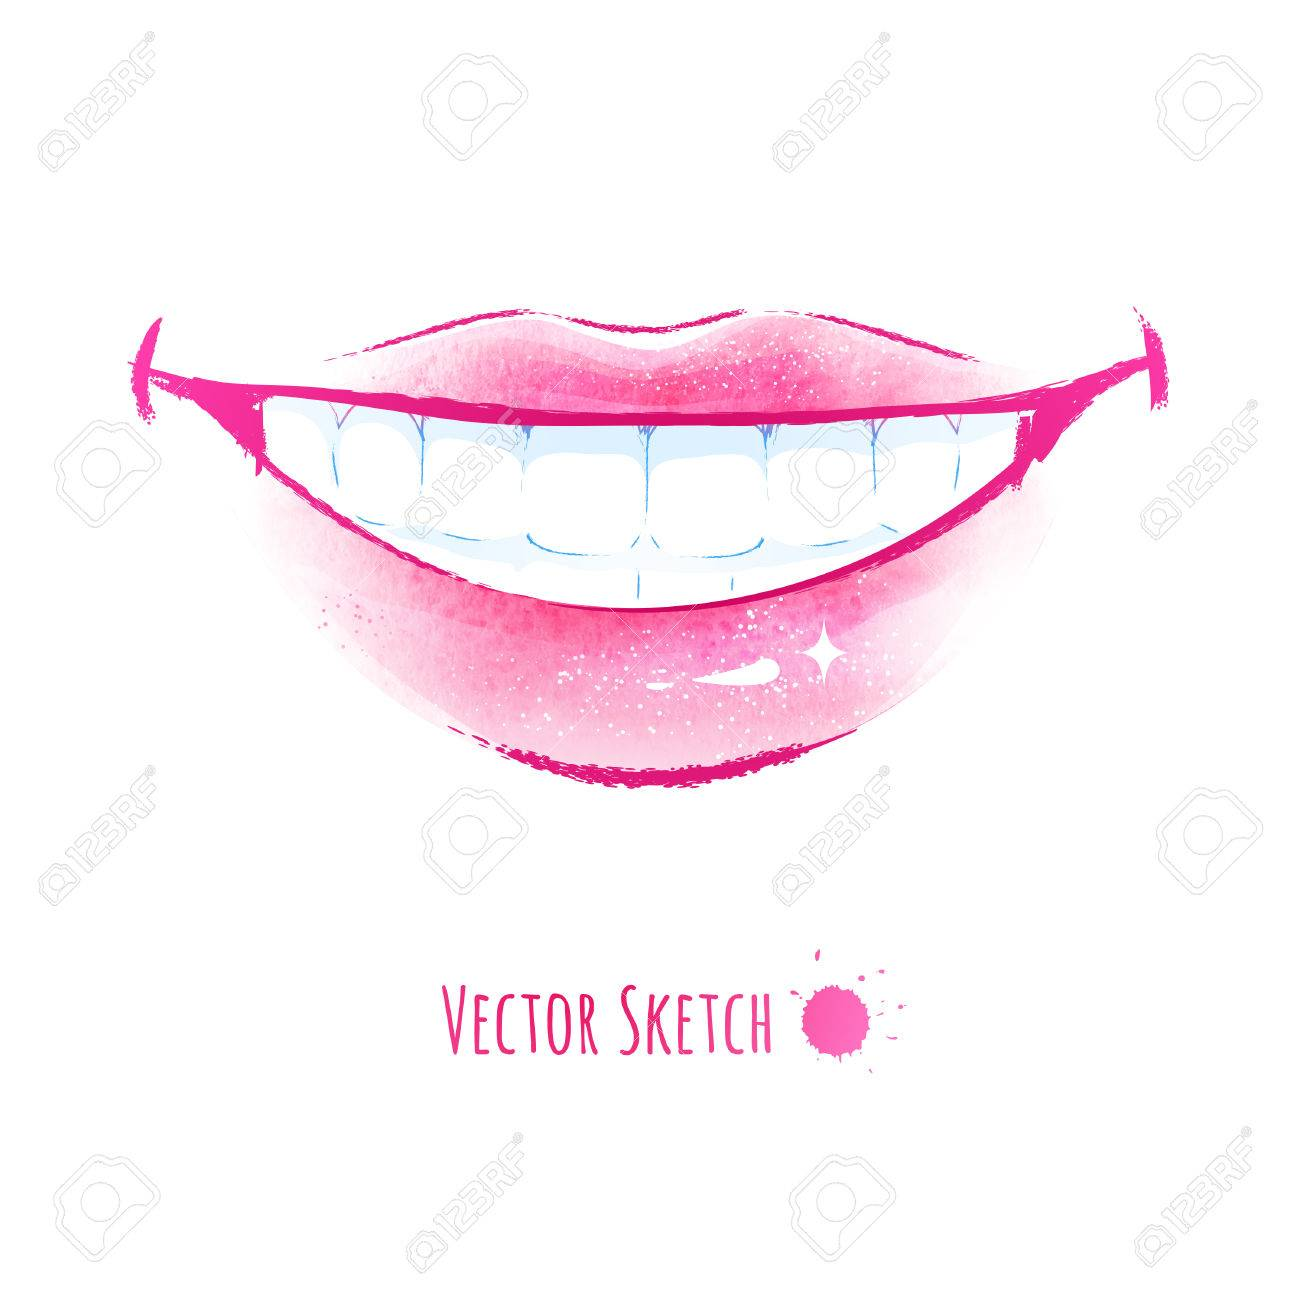 1300x1300 Hand Drawn Watercolor Vector Illustration Of Smiling Lips. Royalty